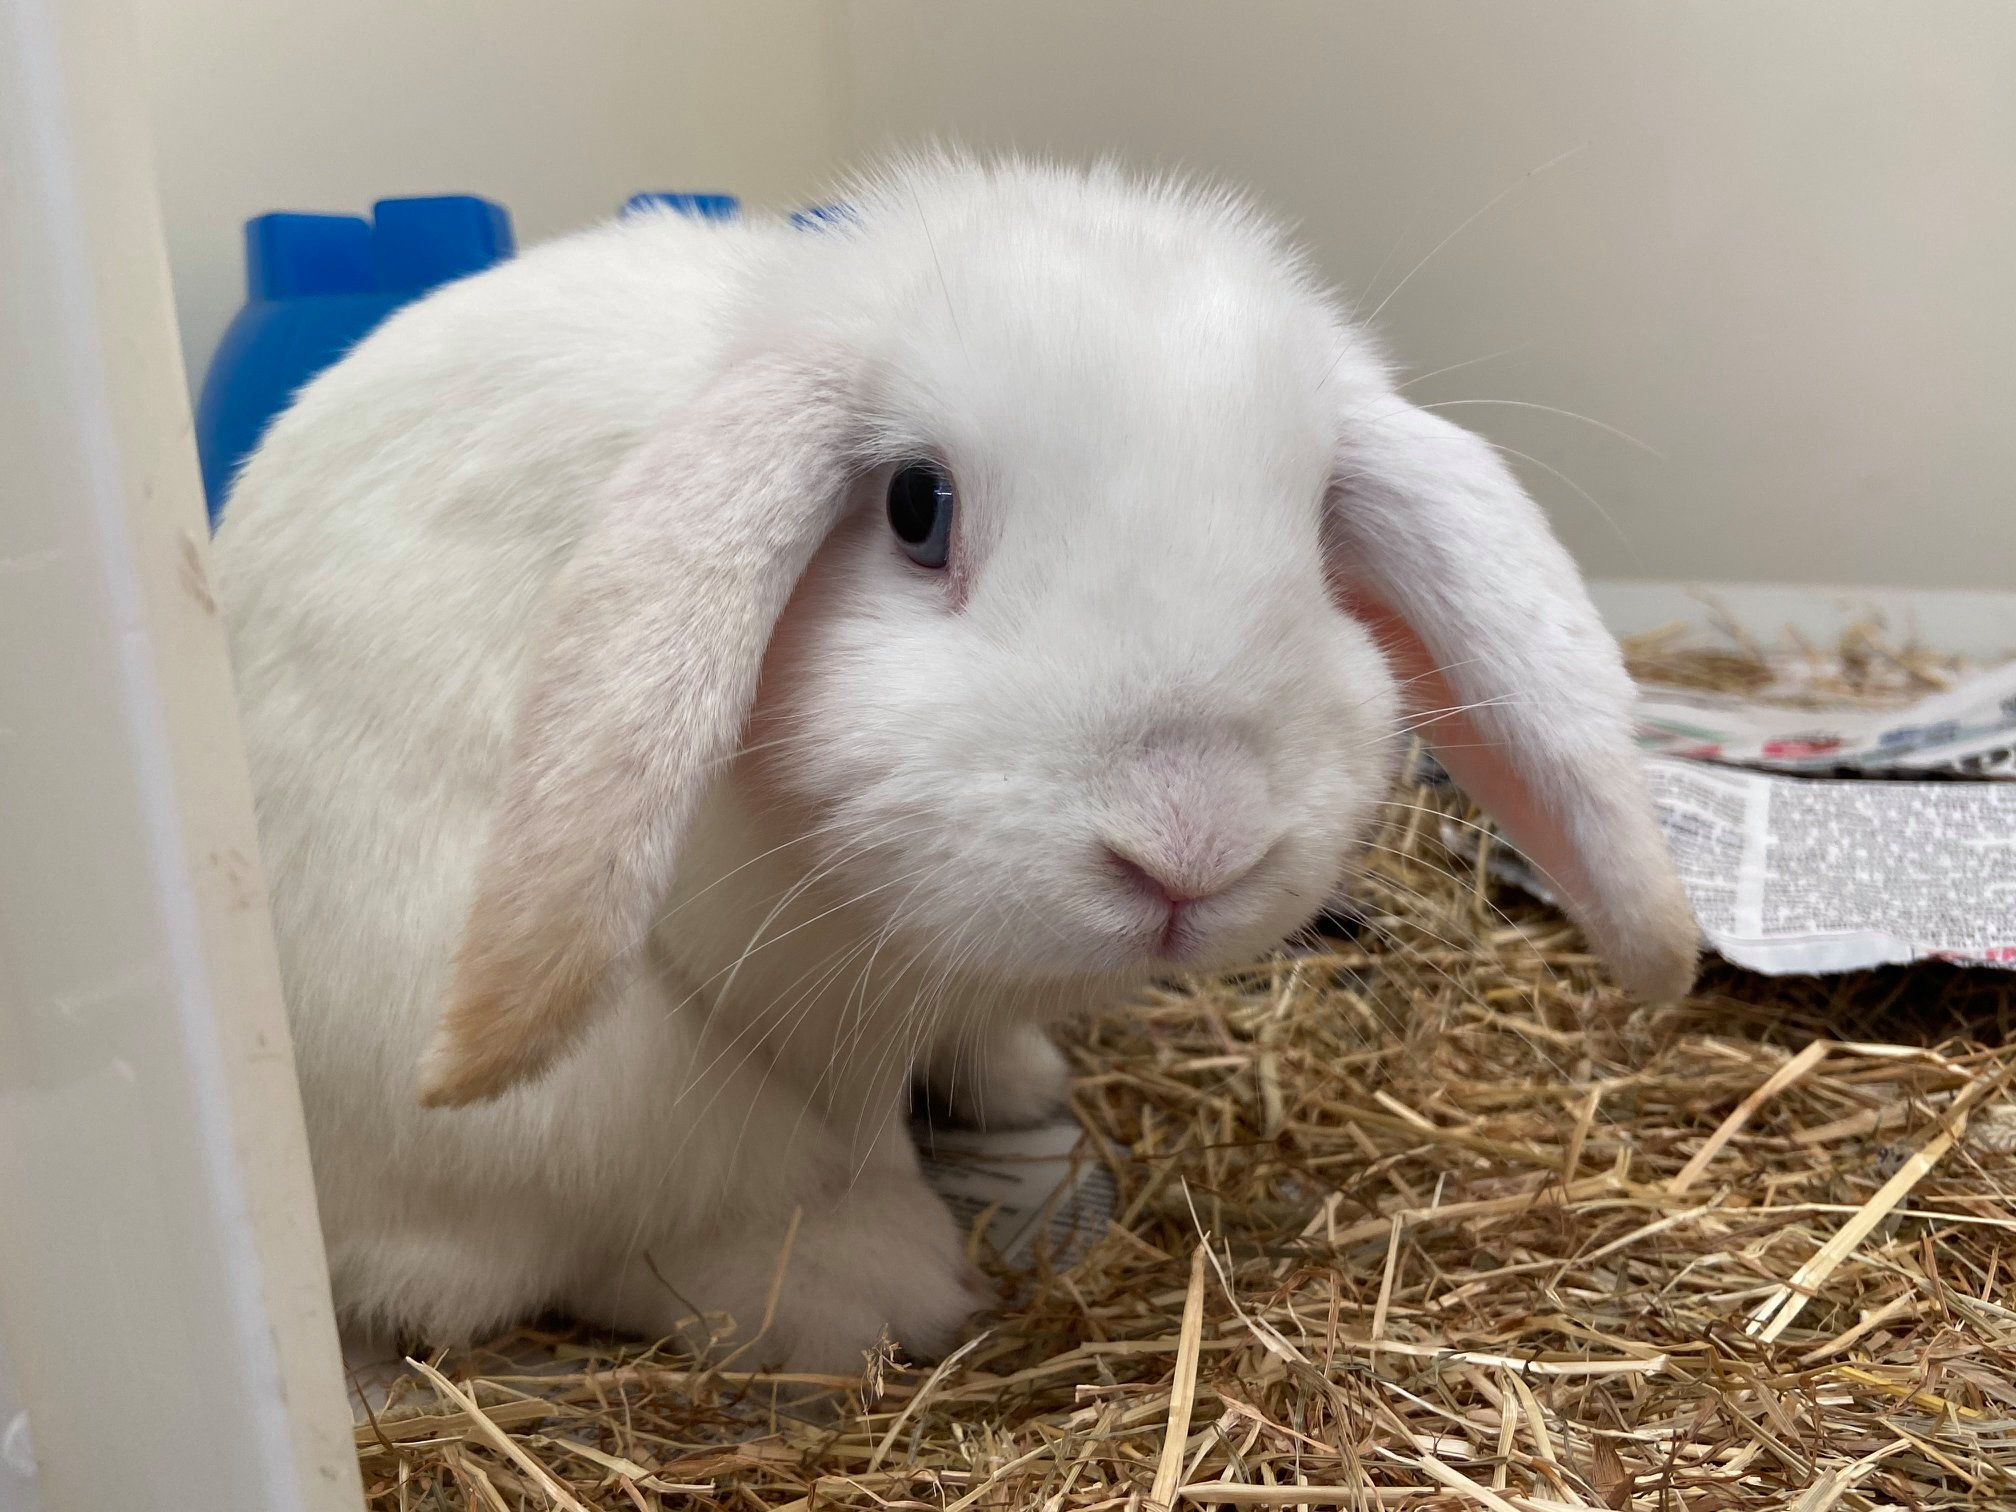 Can you help get this rabbit home?